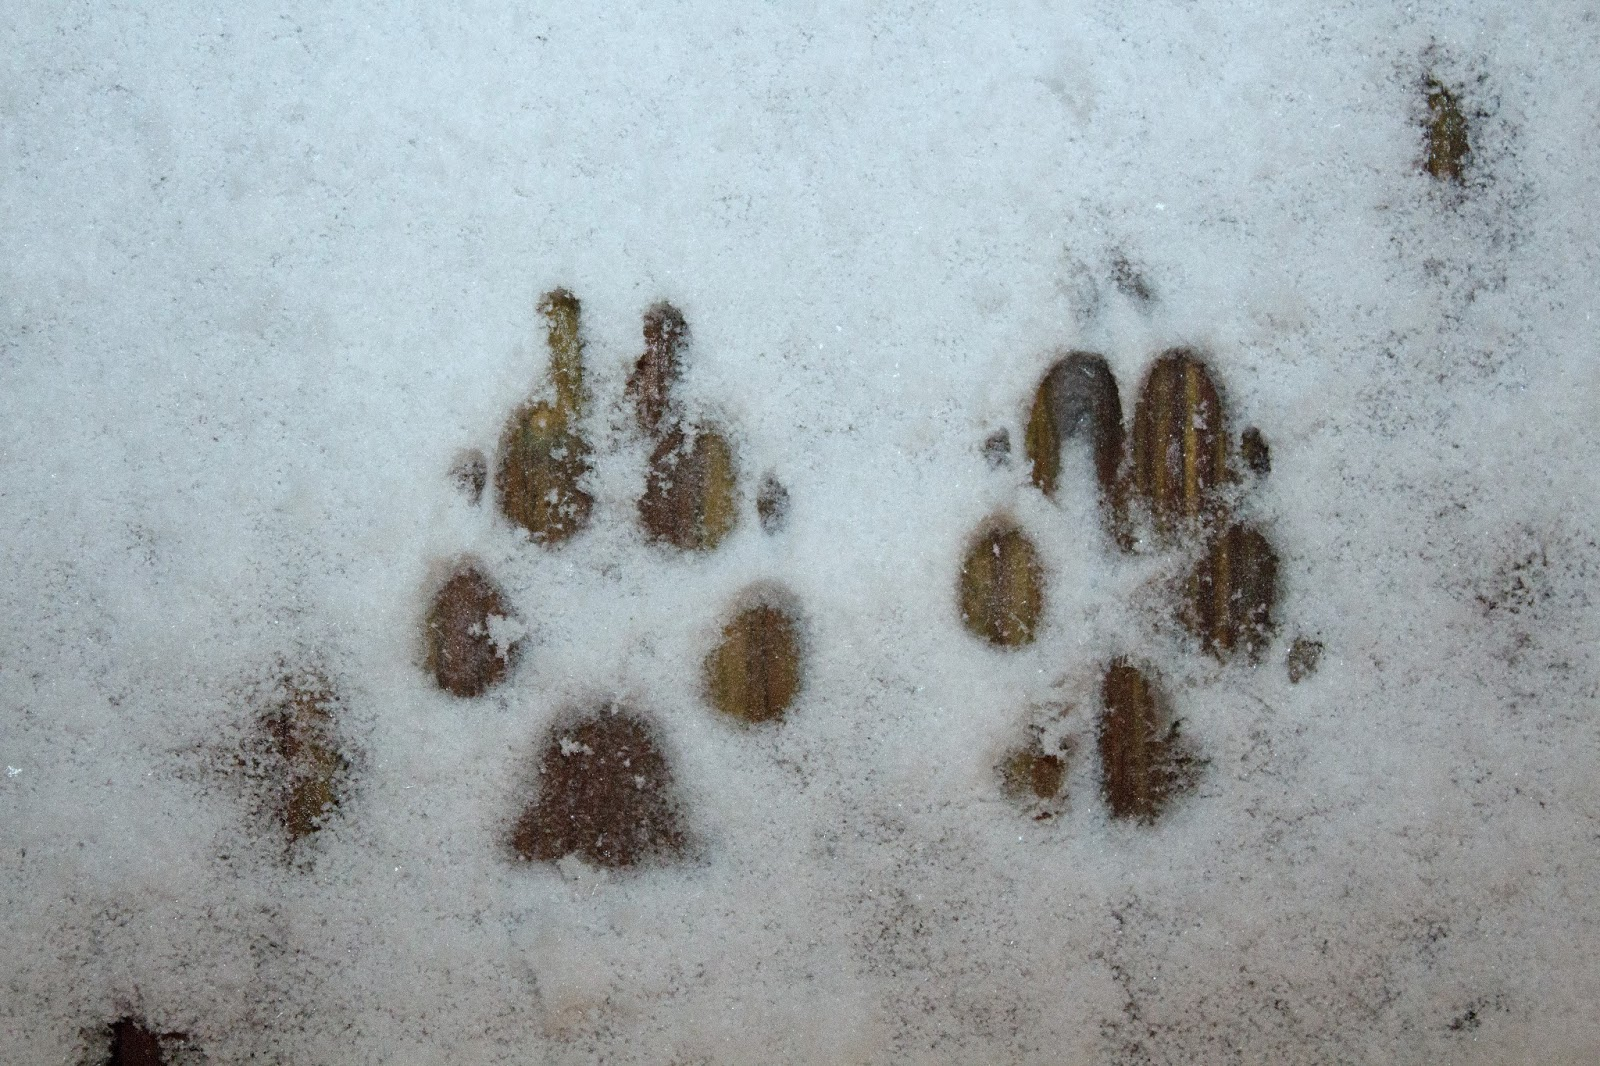 Blue and Bettina's paw prints